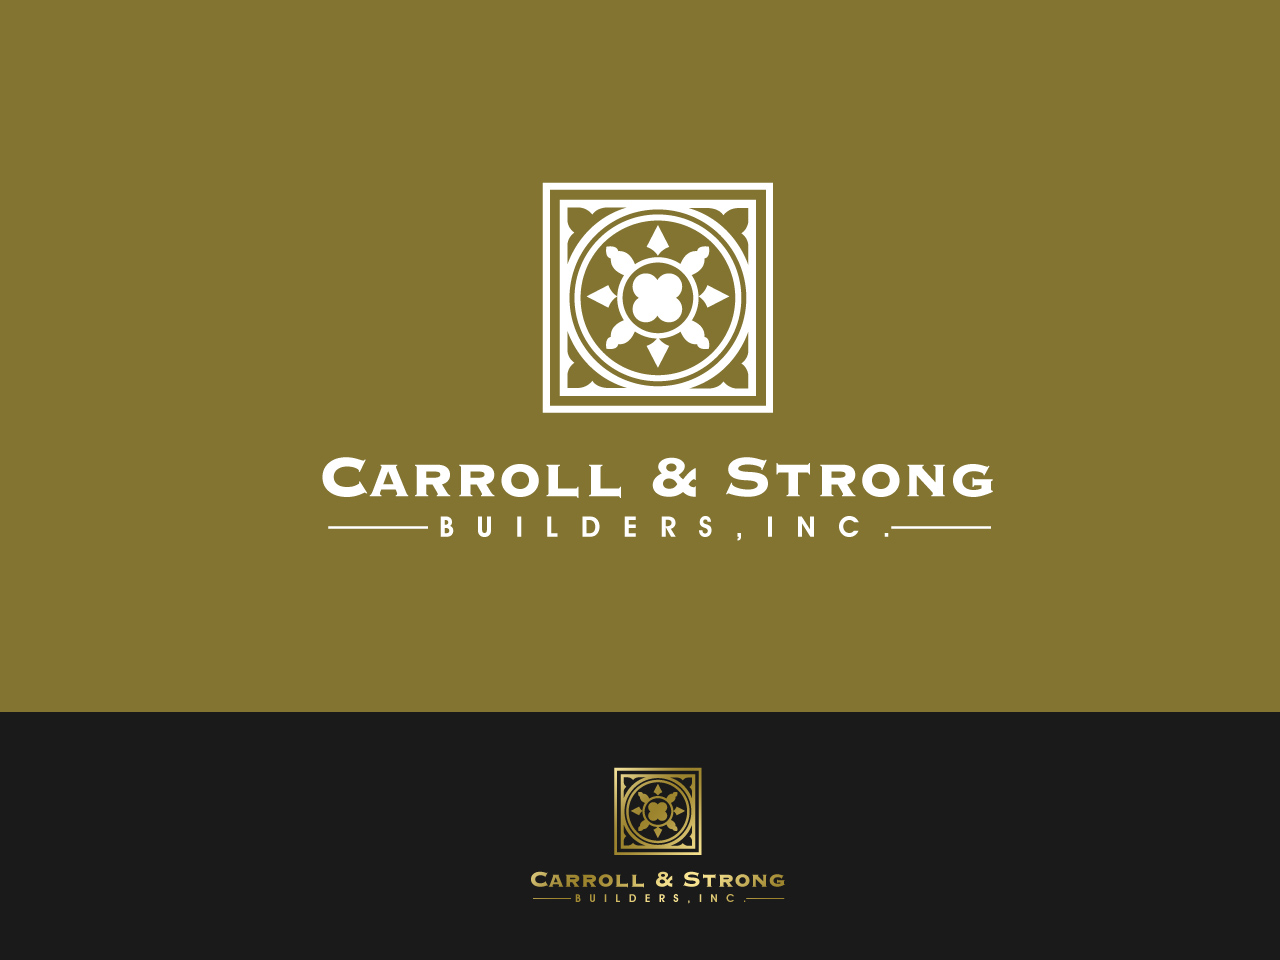 Logo Design by jpbituin - Entry No. 45 in the Logo Design Contest New Logo Design for Carroll & Strong Builders, Inc..